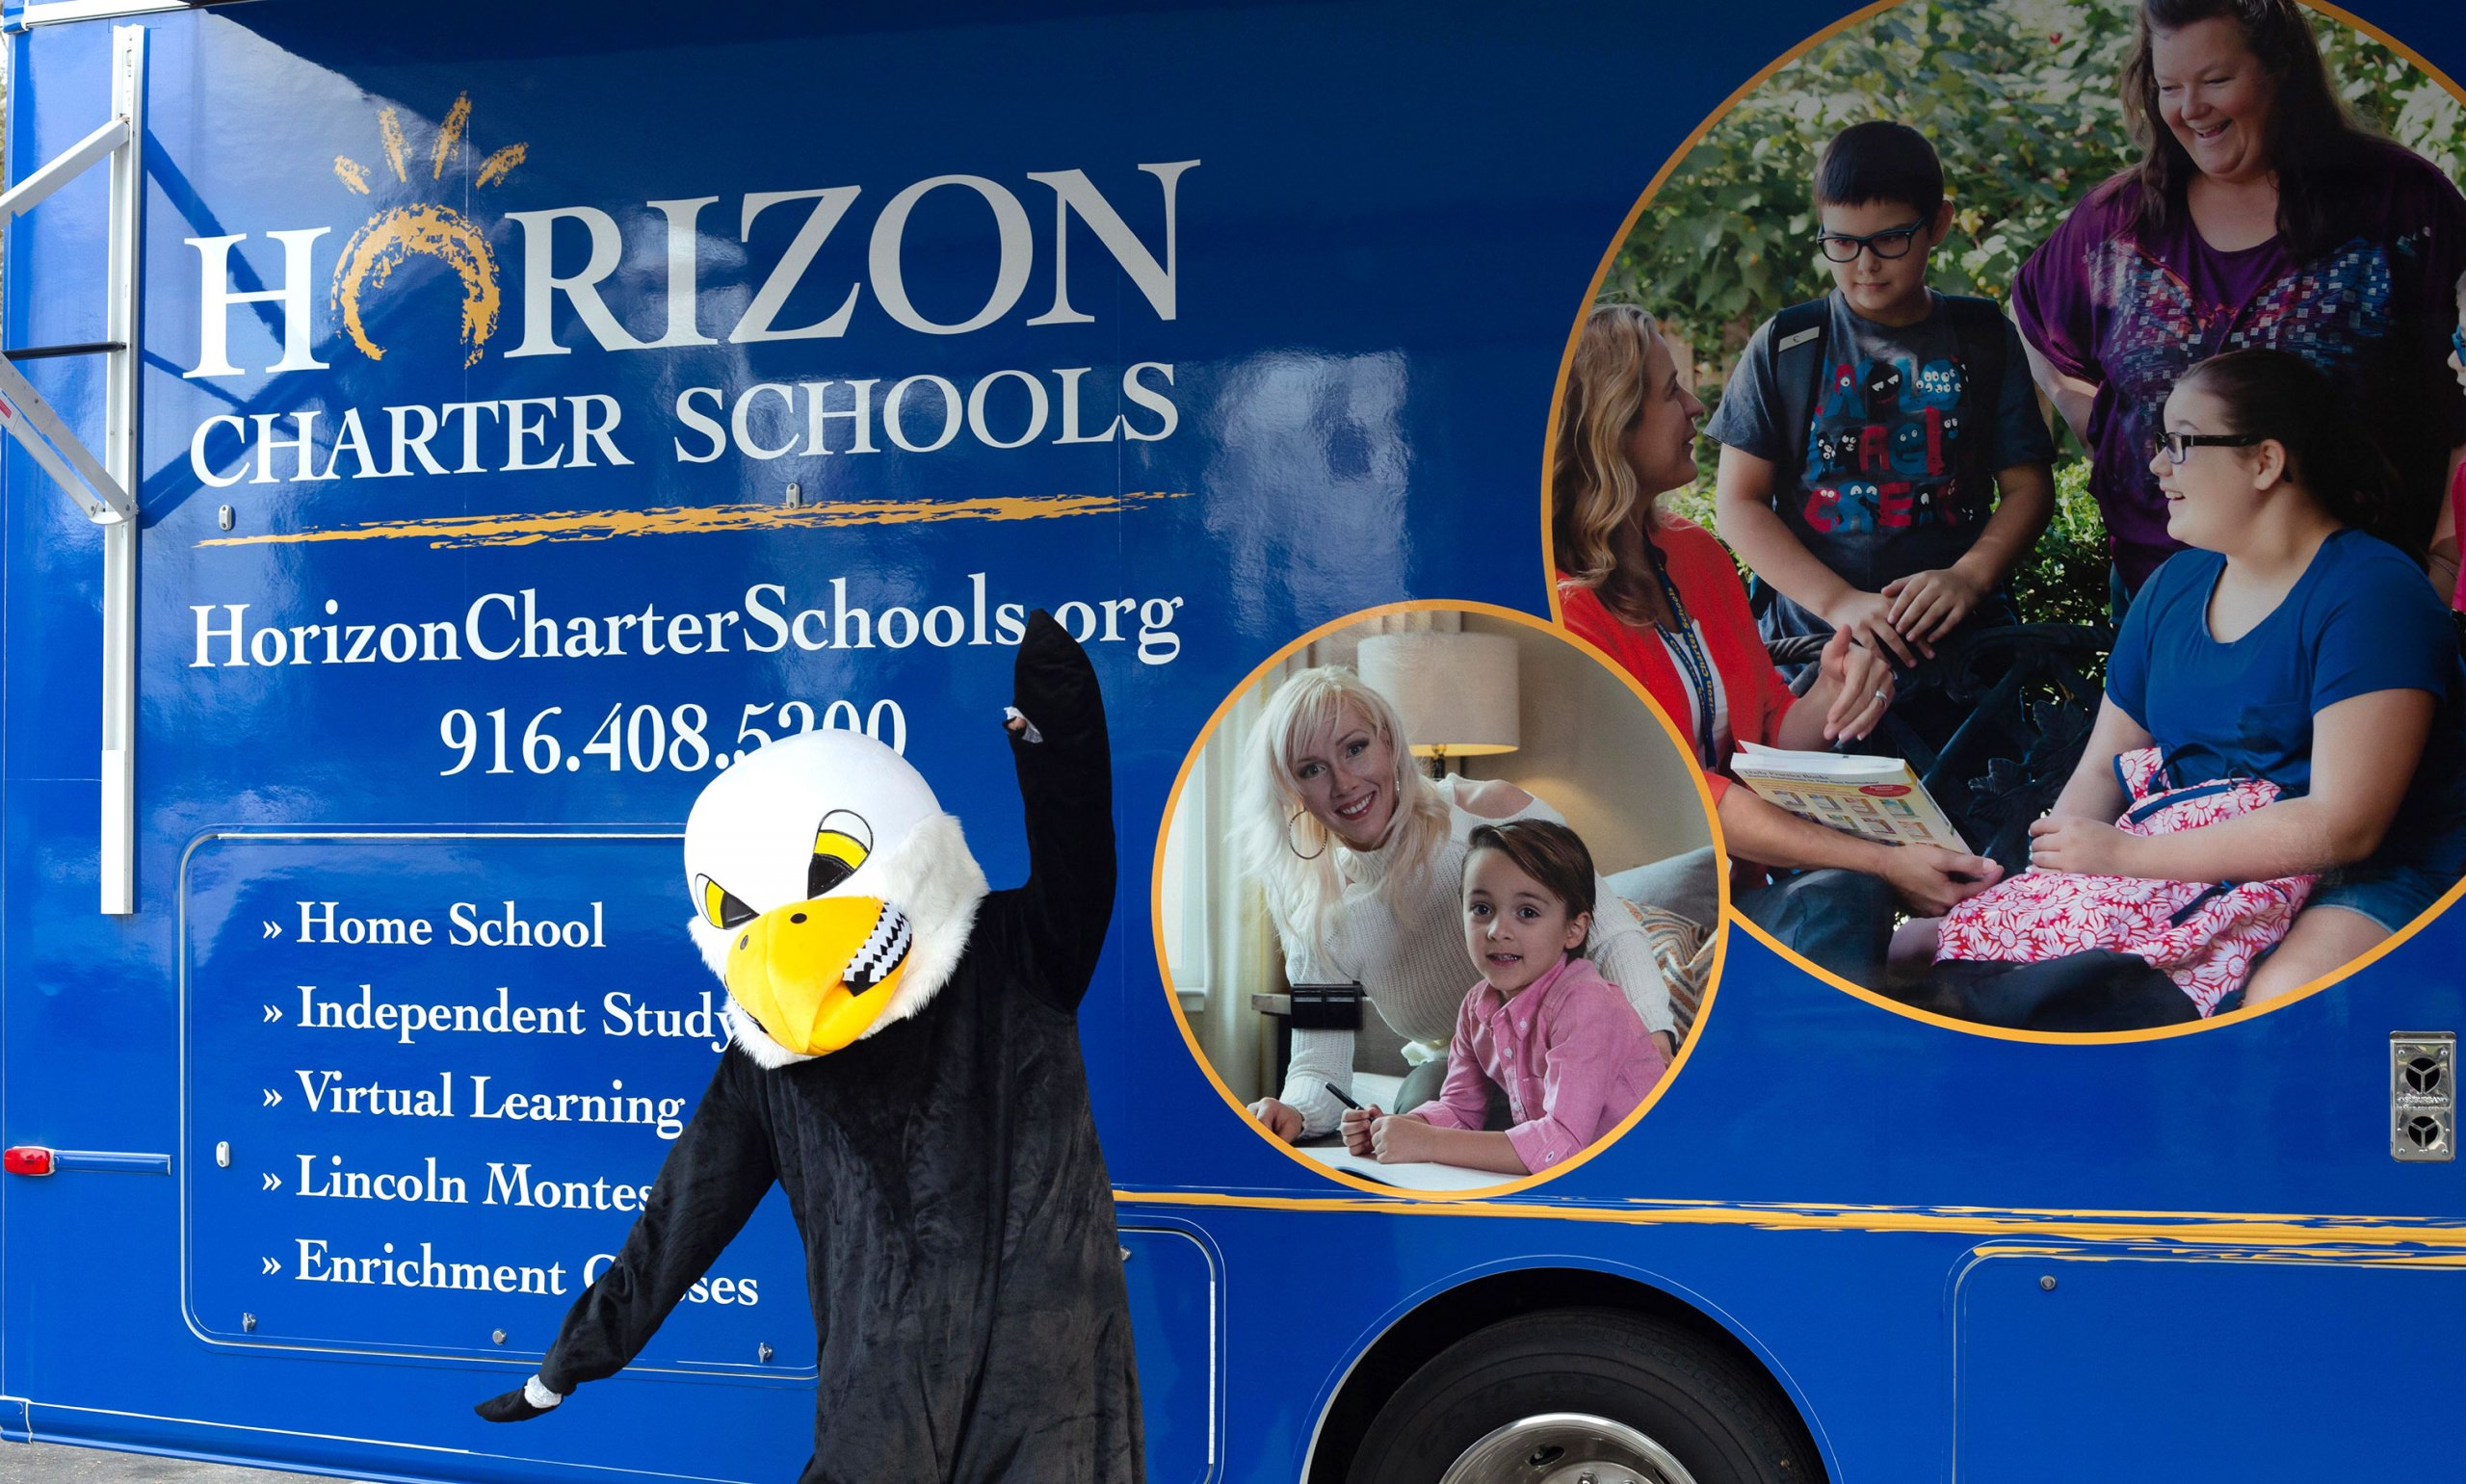 Horizon Charter Schools' Mobile Learning Lab and eagle mascot